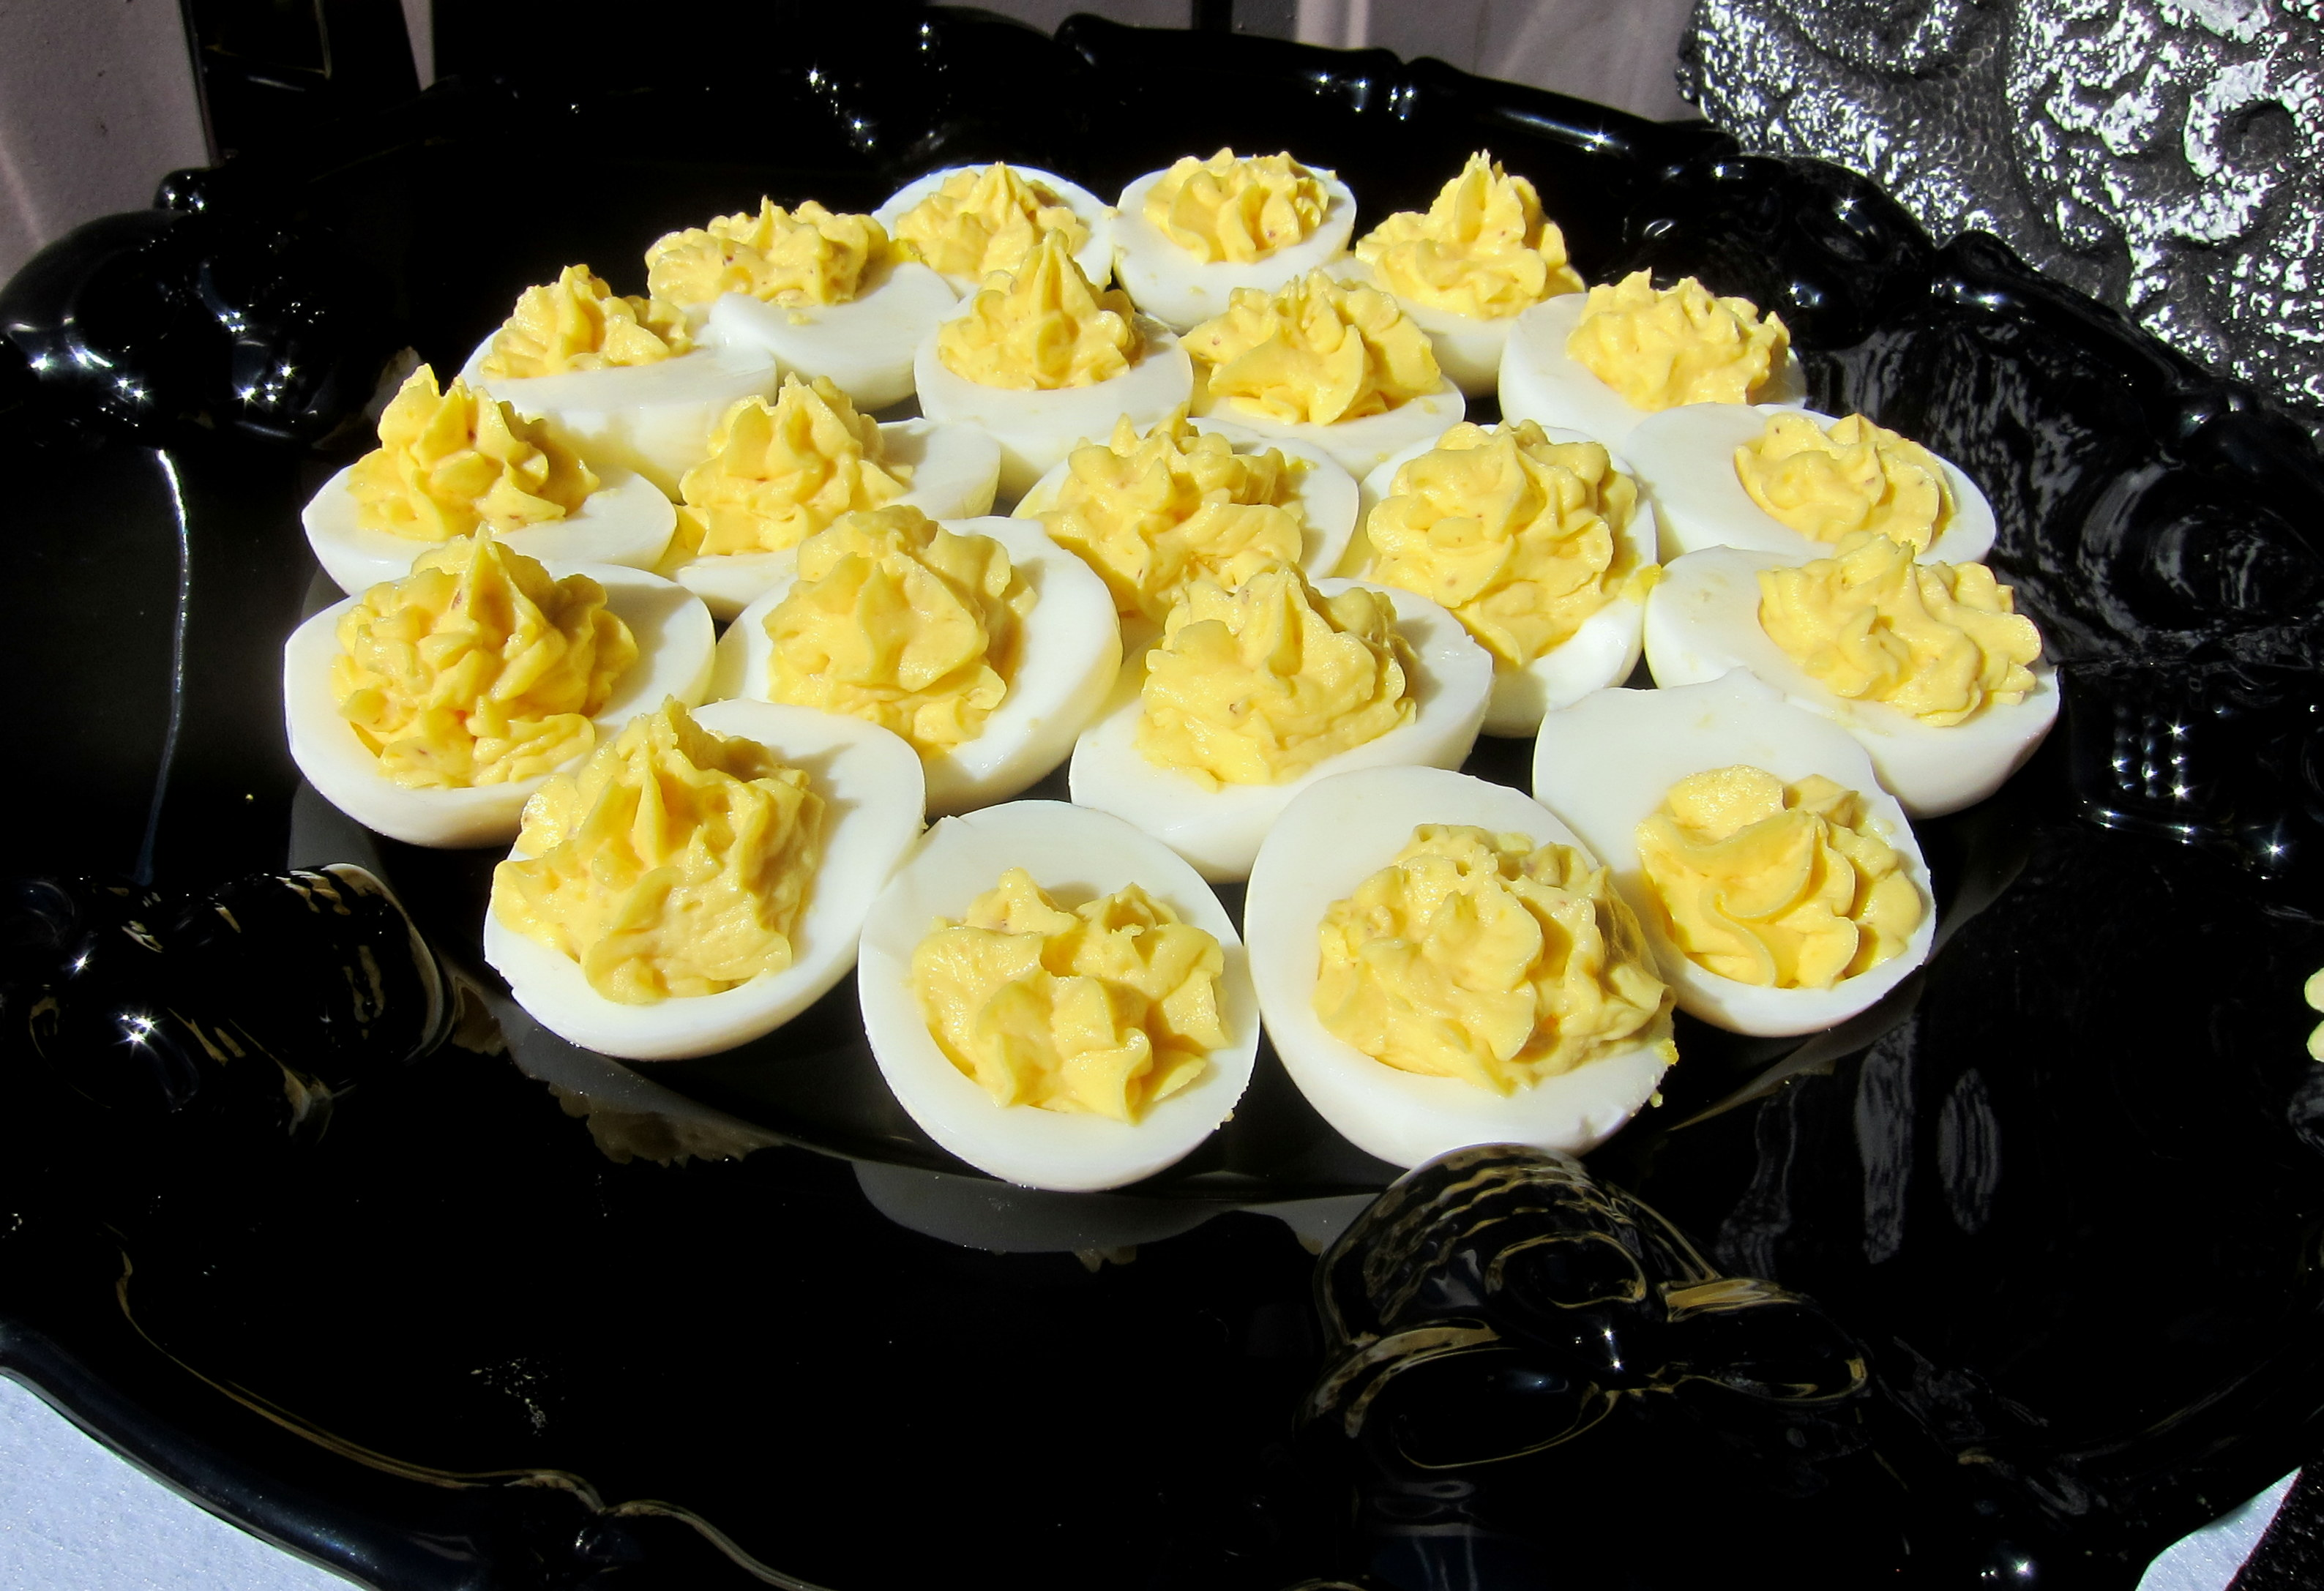 Vampire Repellent aka Garlic Deviled Eggs